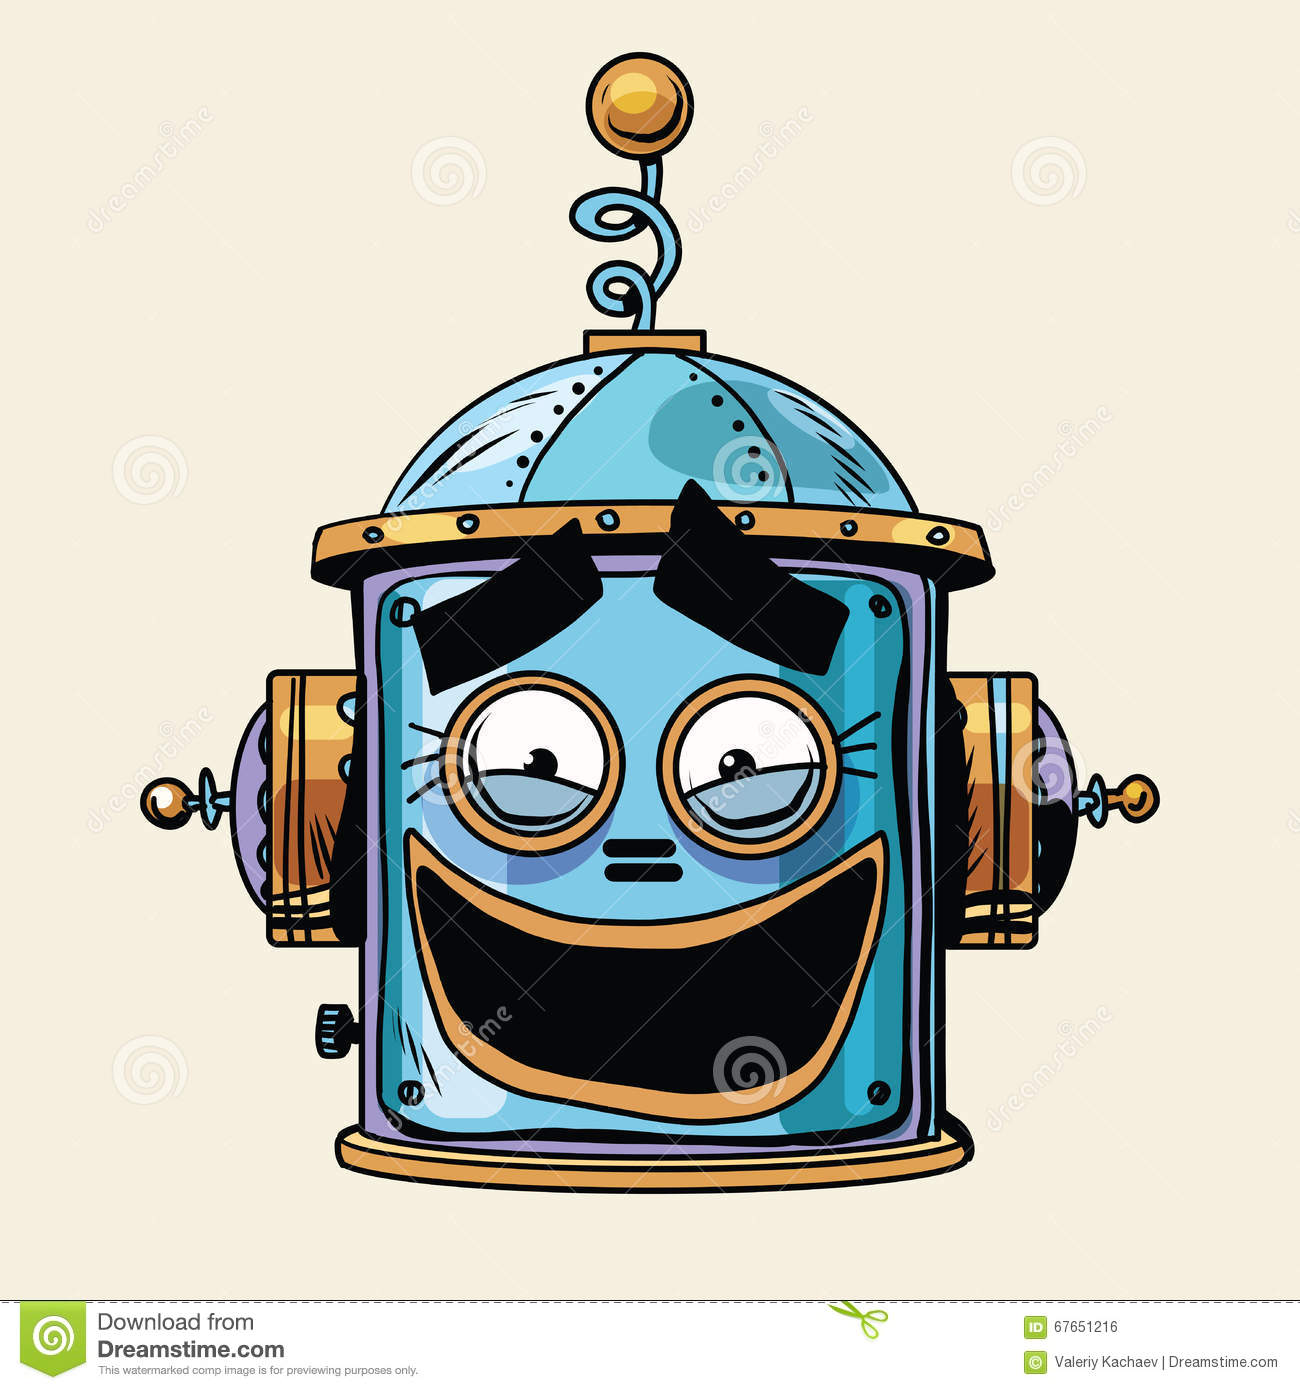 pop up mechanism with Stock Illustration Emoticon Funny Laughing Emoji Robot Head Smiley Emotion Pop Art Retro Style Human Emotions Icon Symbol Technology Artificial Image67651216 on Stock Illustration Emoticon Funny Laughing Emoji Robot Head Smiley Emotion Pop Art Retro Style Human Emotions Icon Symbol Technology Artificial Image67651216 additionally Birthday Female also Keep Food Produce Fresh Longer further 519045 Emergency Trunk Opening Procedure also 000210.